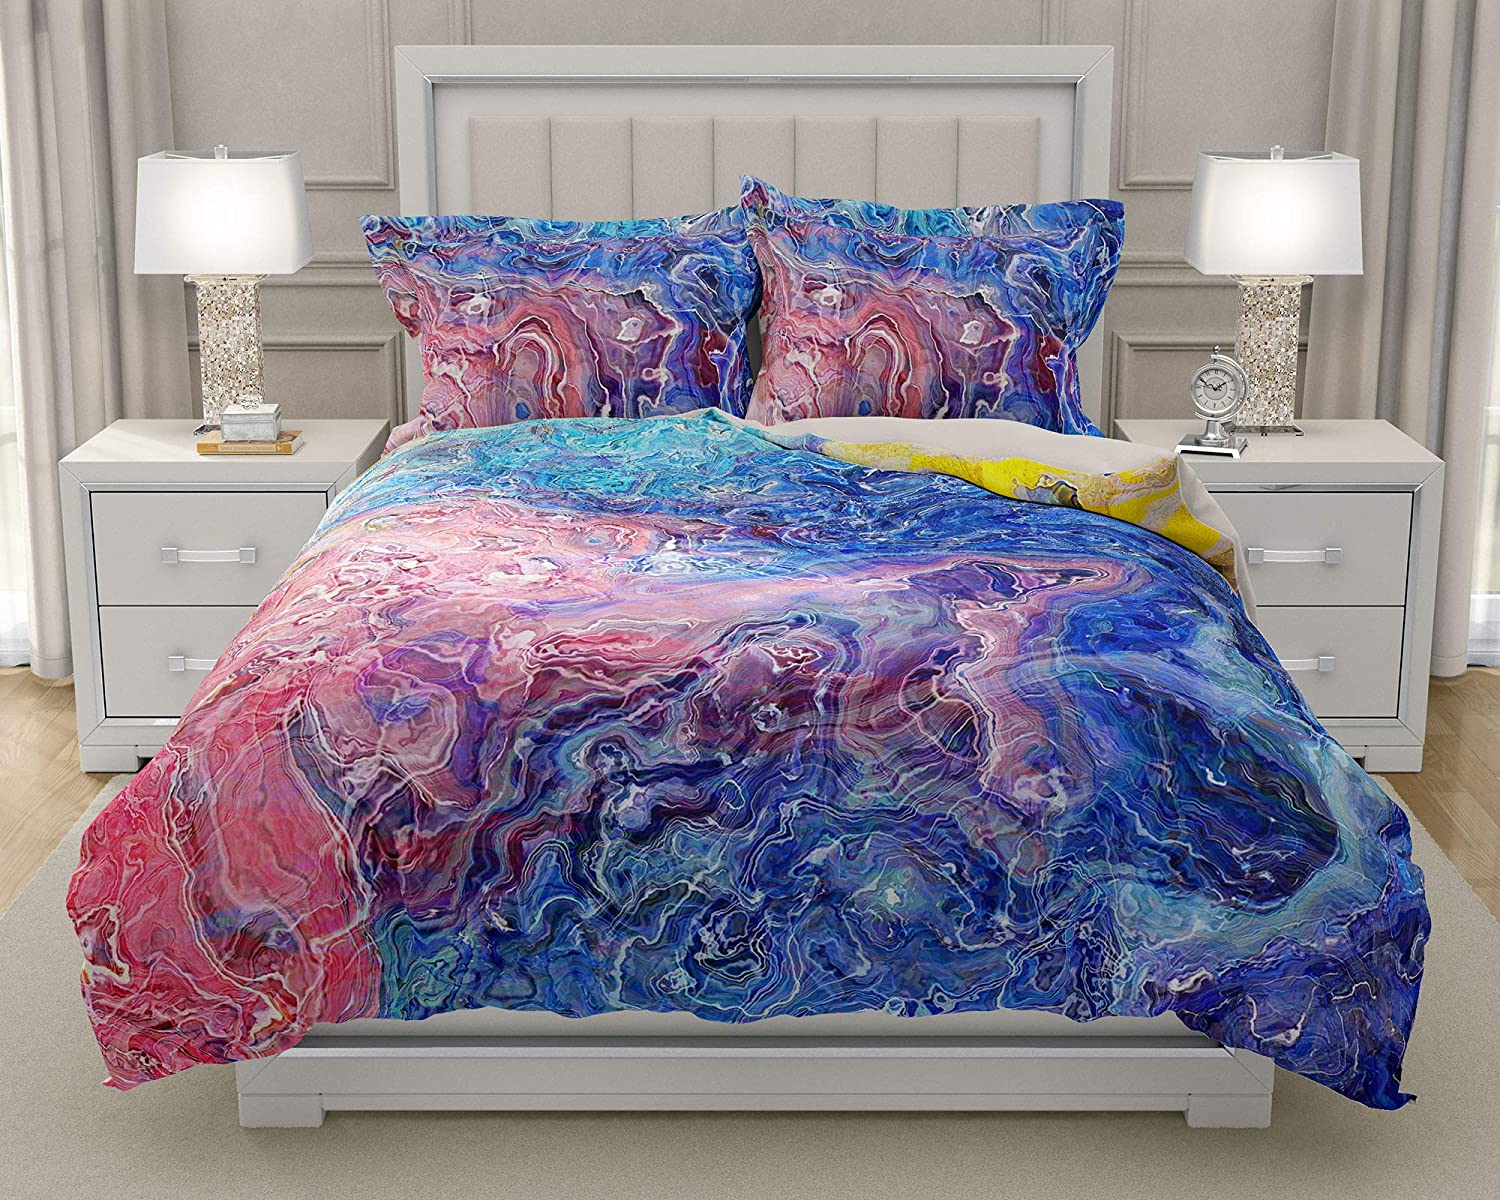 Image of King or Queen 3 pc Duvet Cover Set with abstract art, Floral Dream